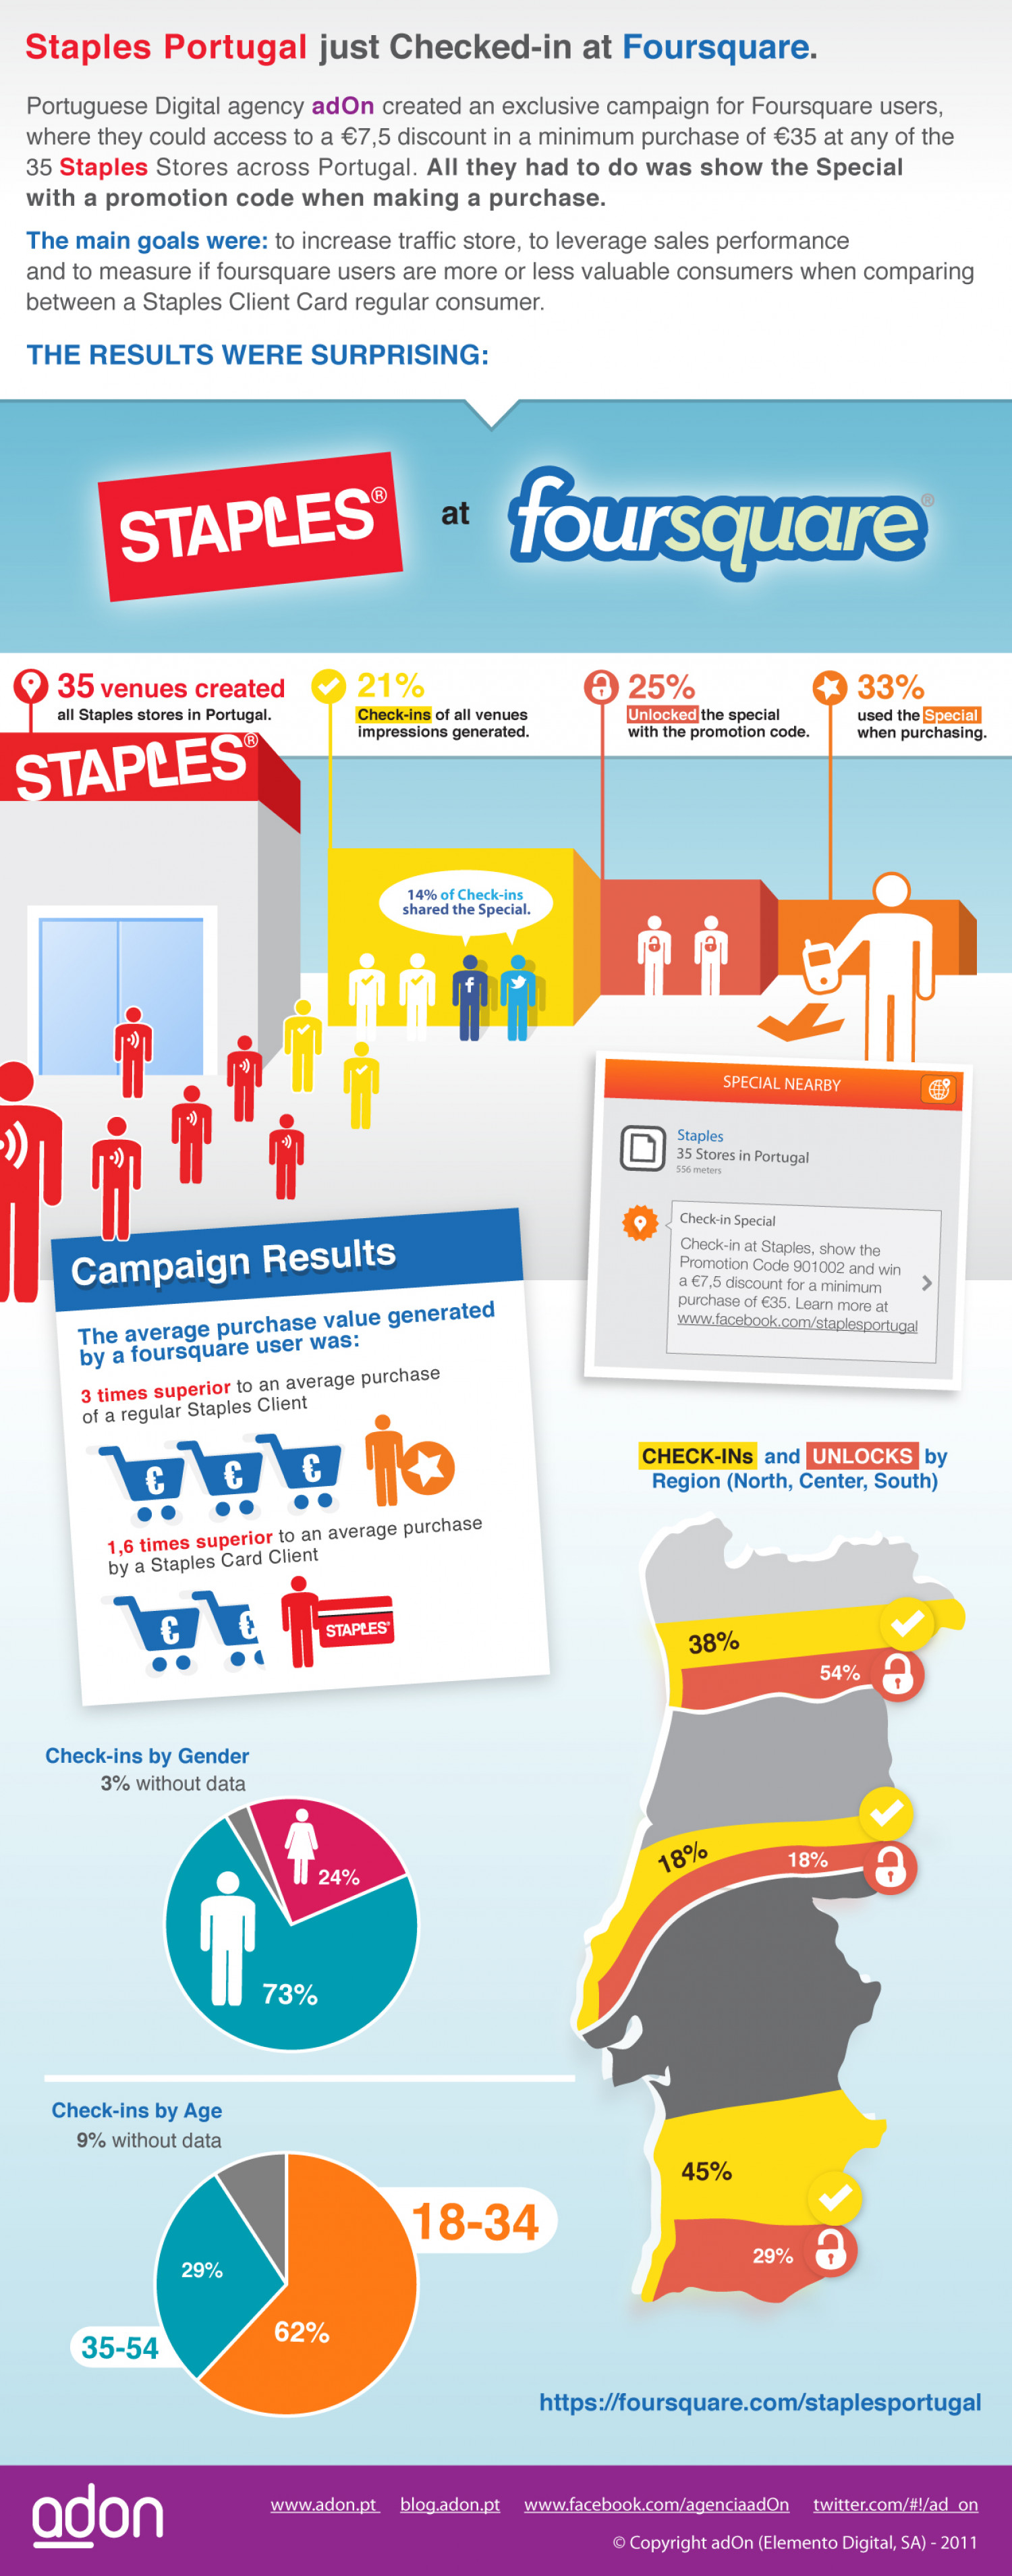 Staples at Foursquare Infographic